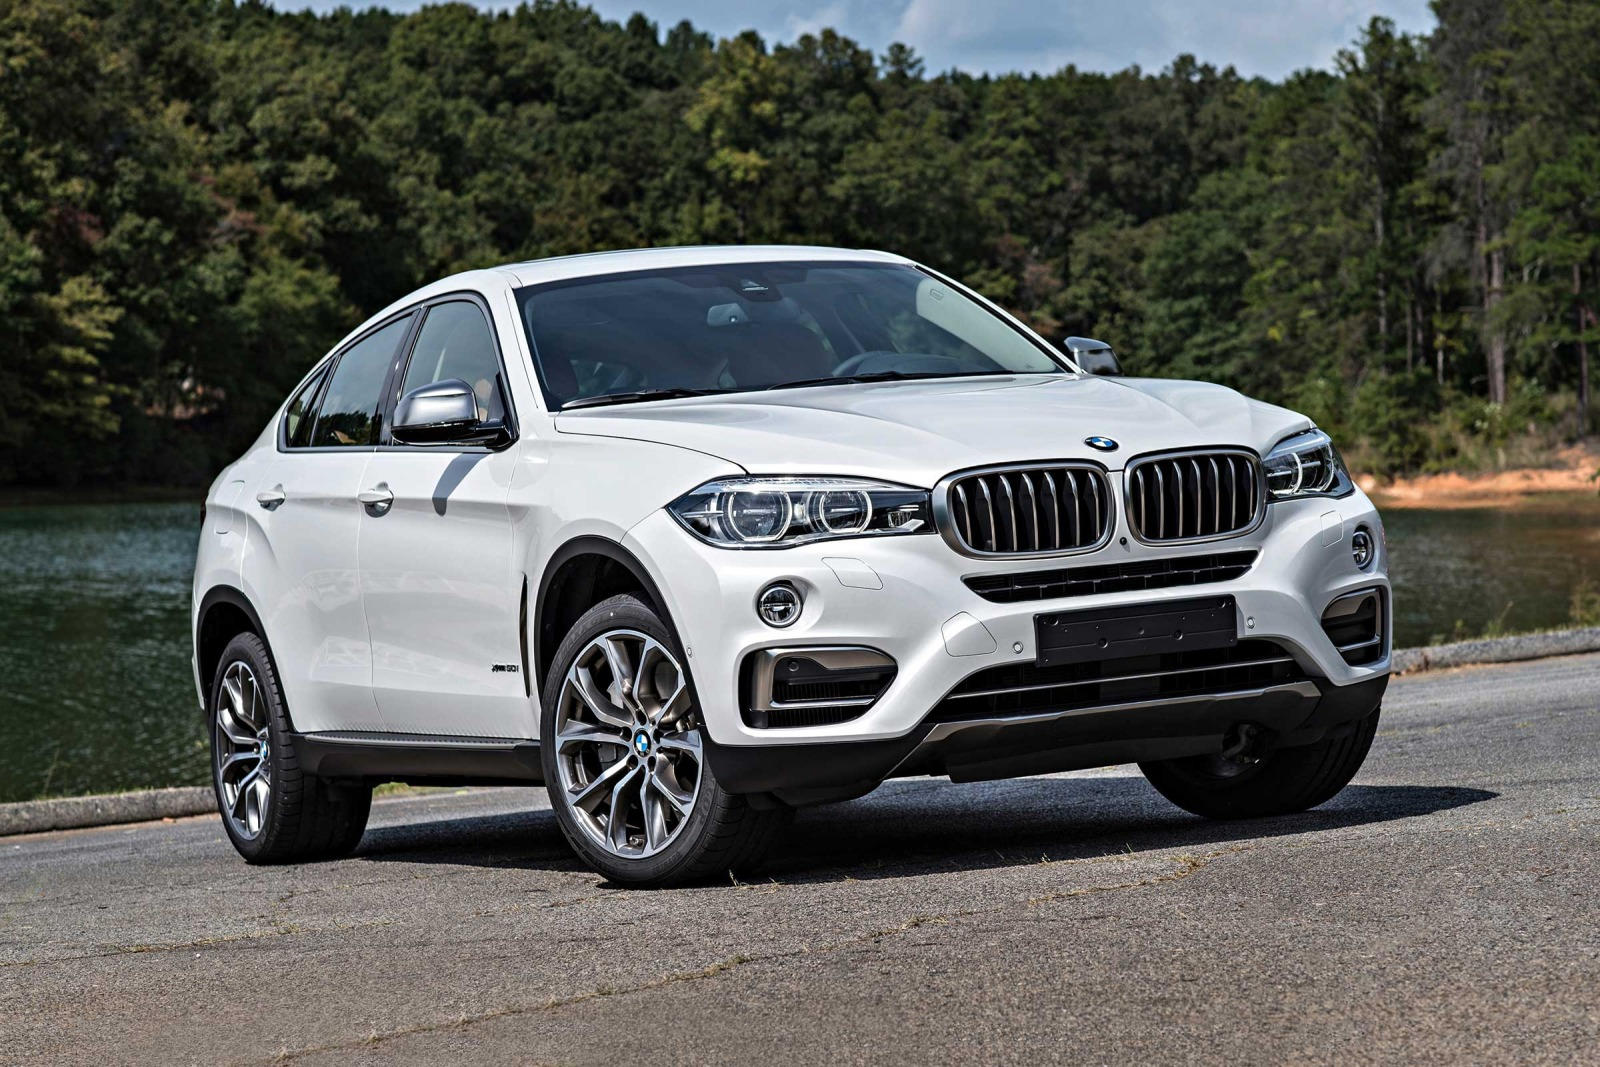 2018 bmw x6 suv review trims specs and price carbuzz. Black Bedroom Furniture Sets. Home Design Ideas